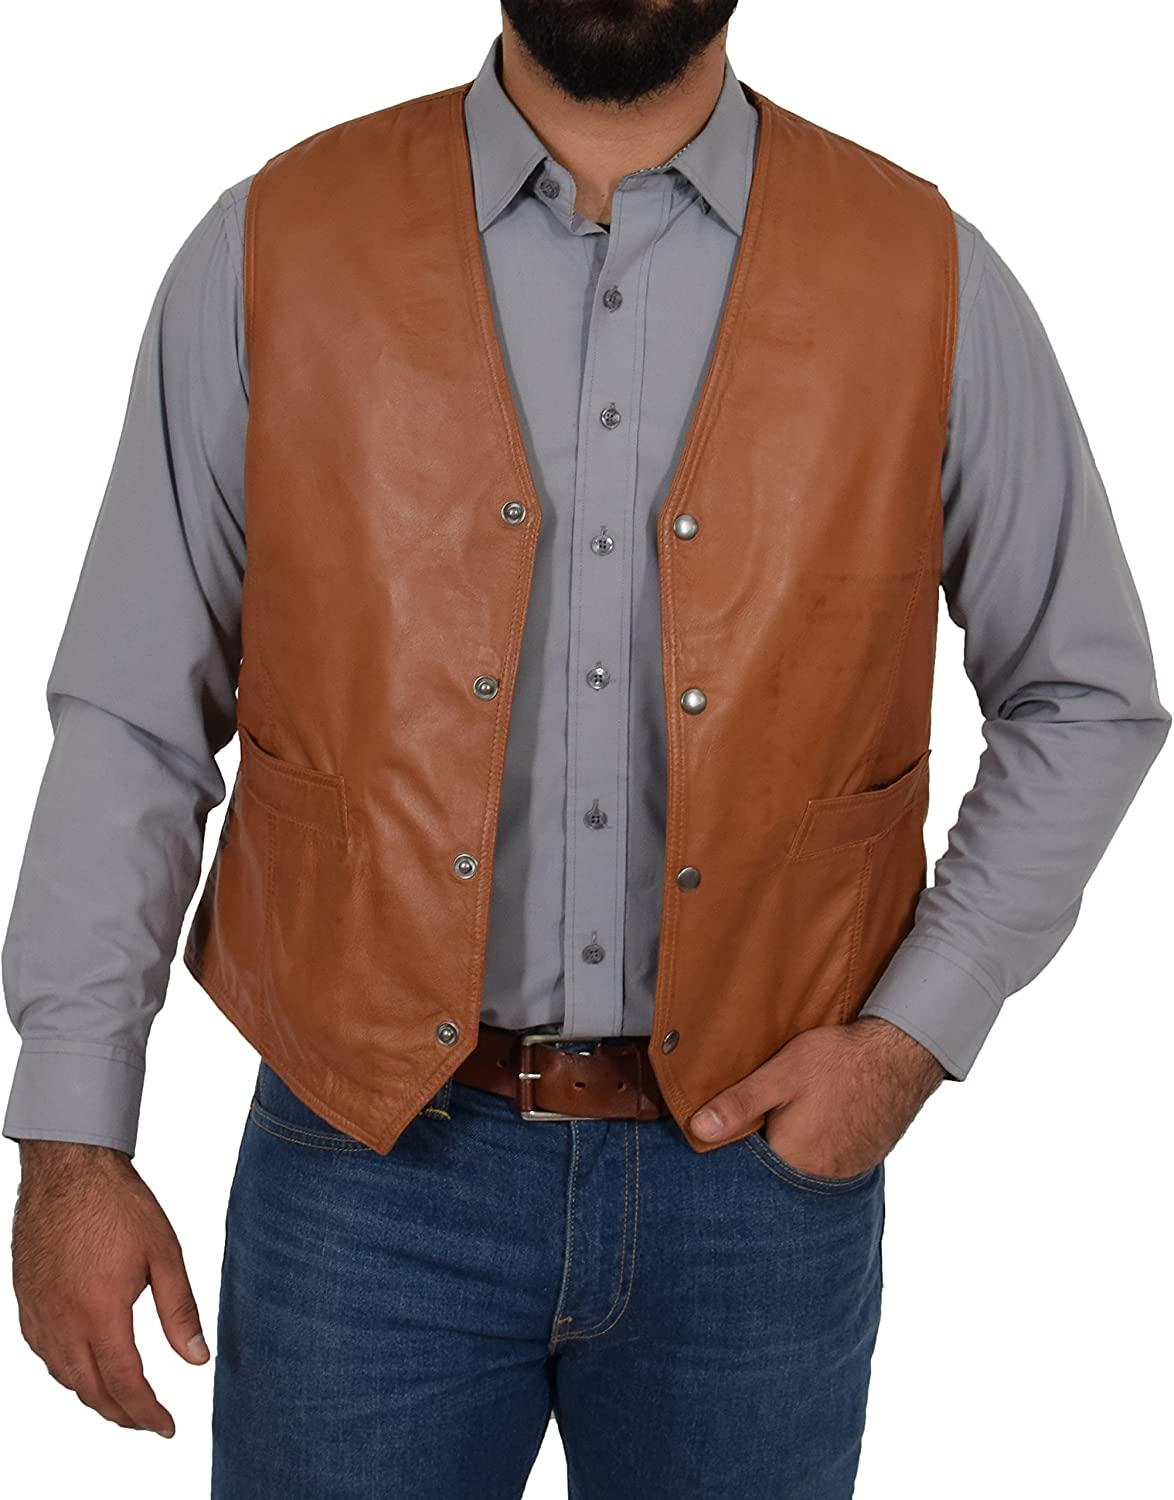 Bruno Mens Soft Tan Leather Waistcoat Classic Traditional Style Gilet Casual Vest